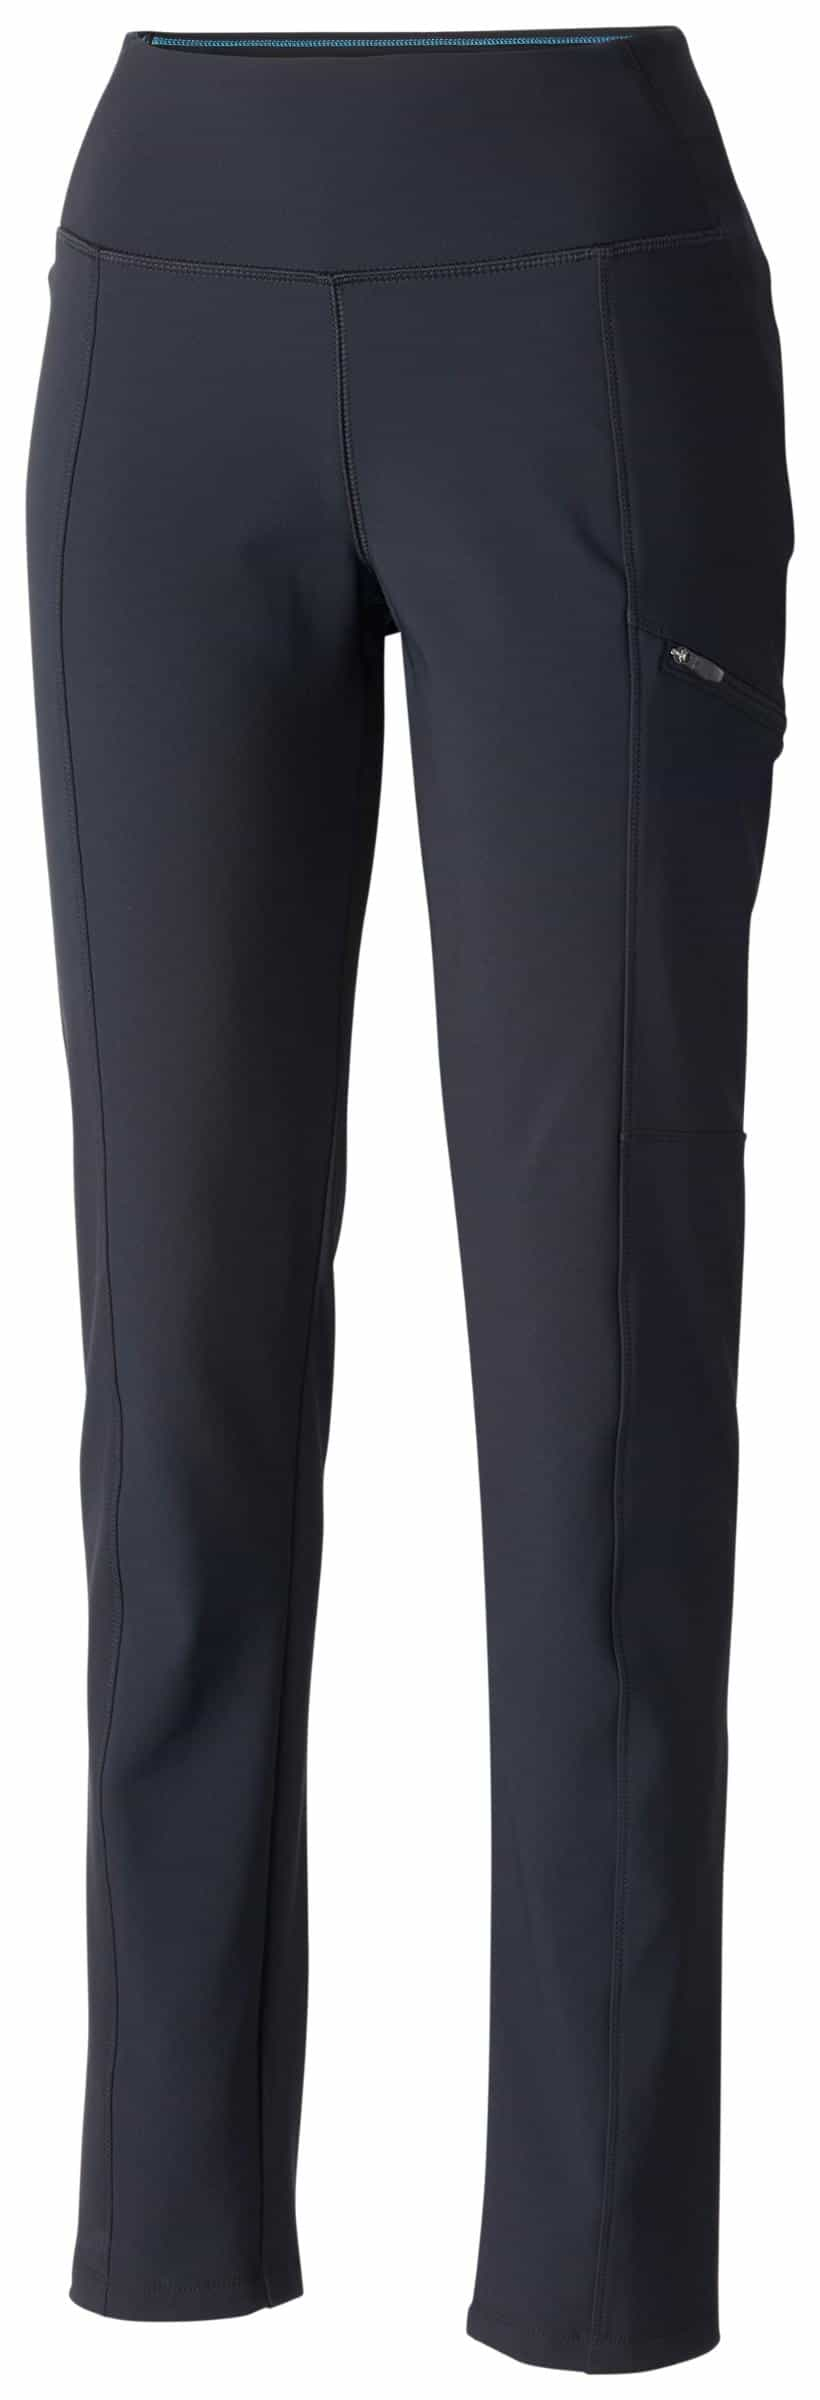 Columbia-Back Beauty Highrise Warm Winter Pant - Women's